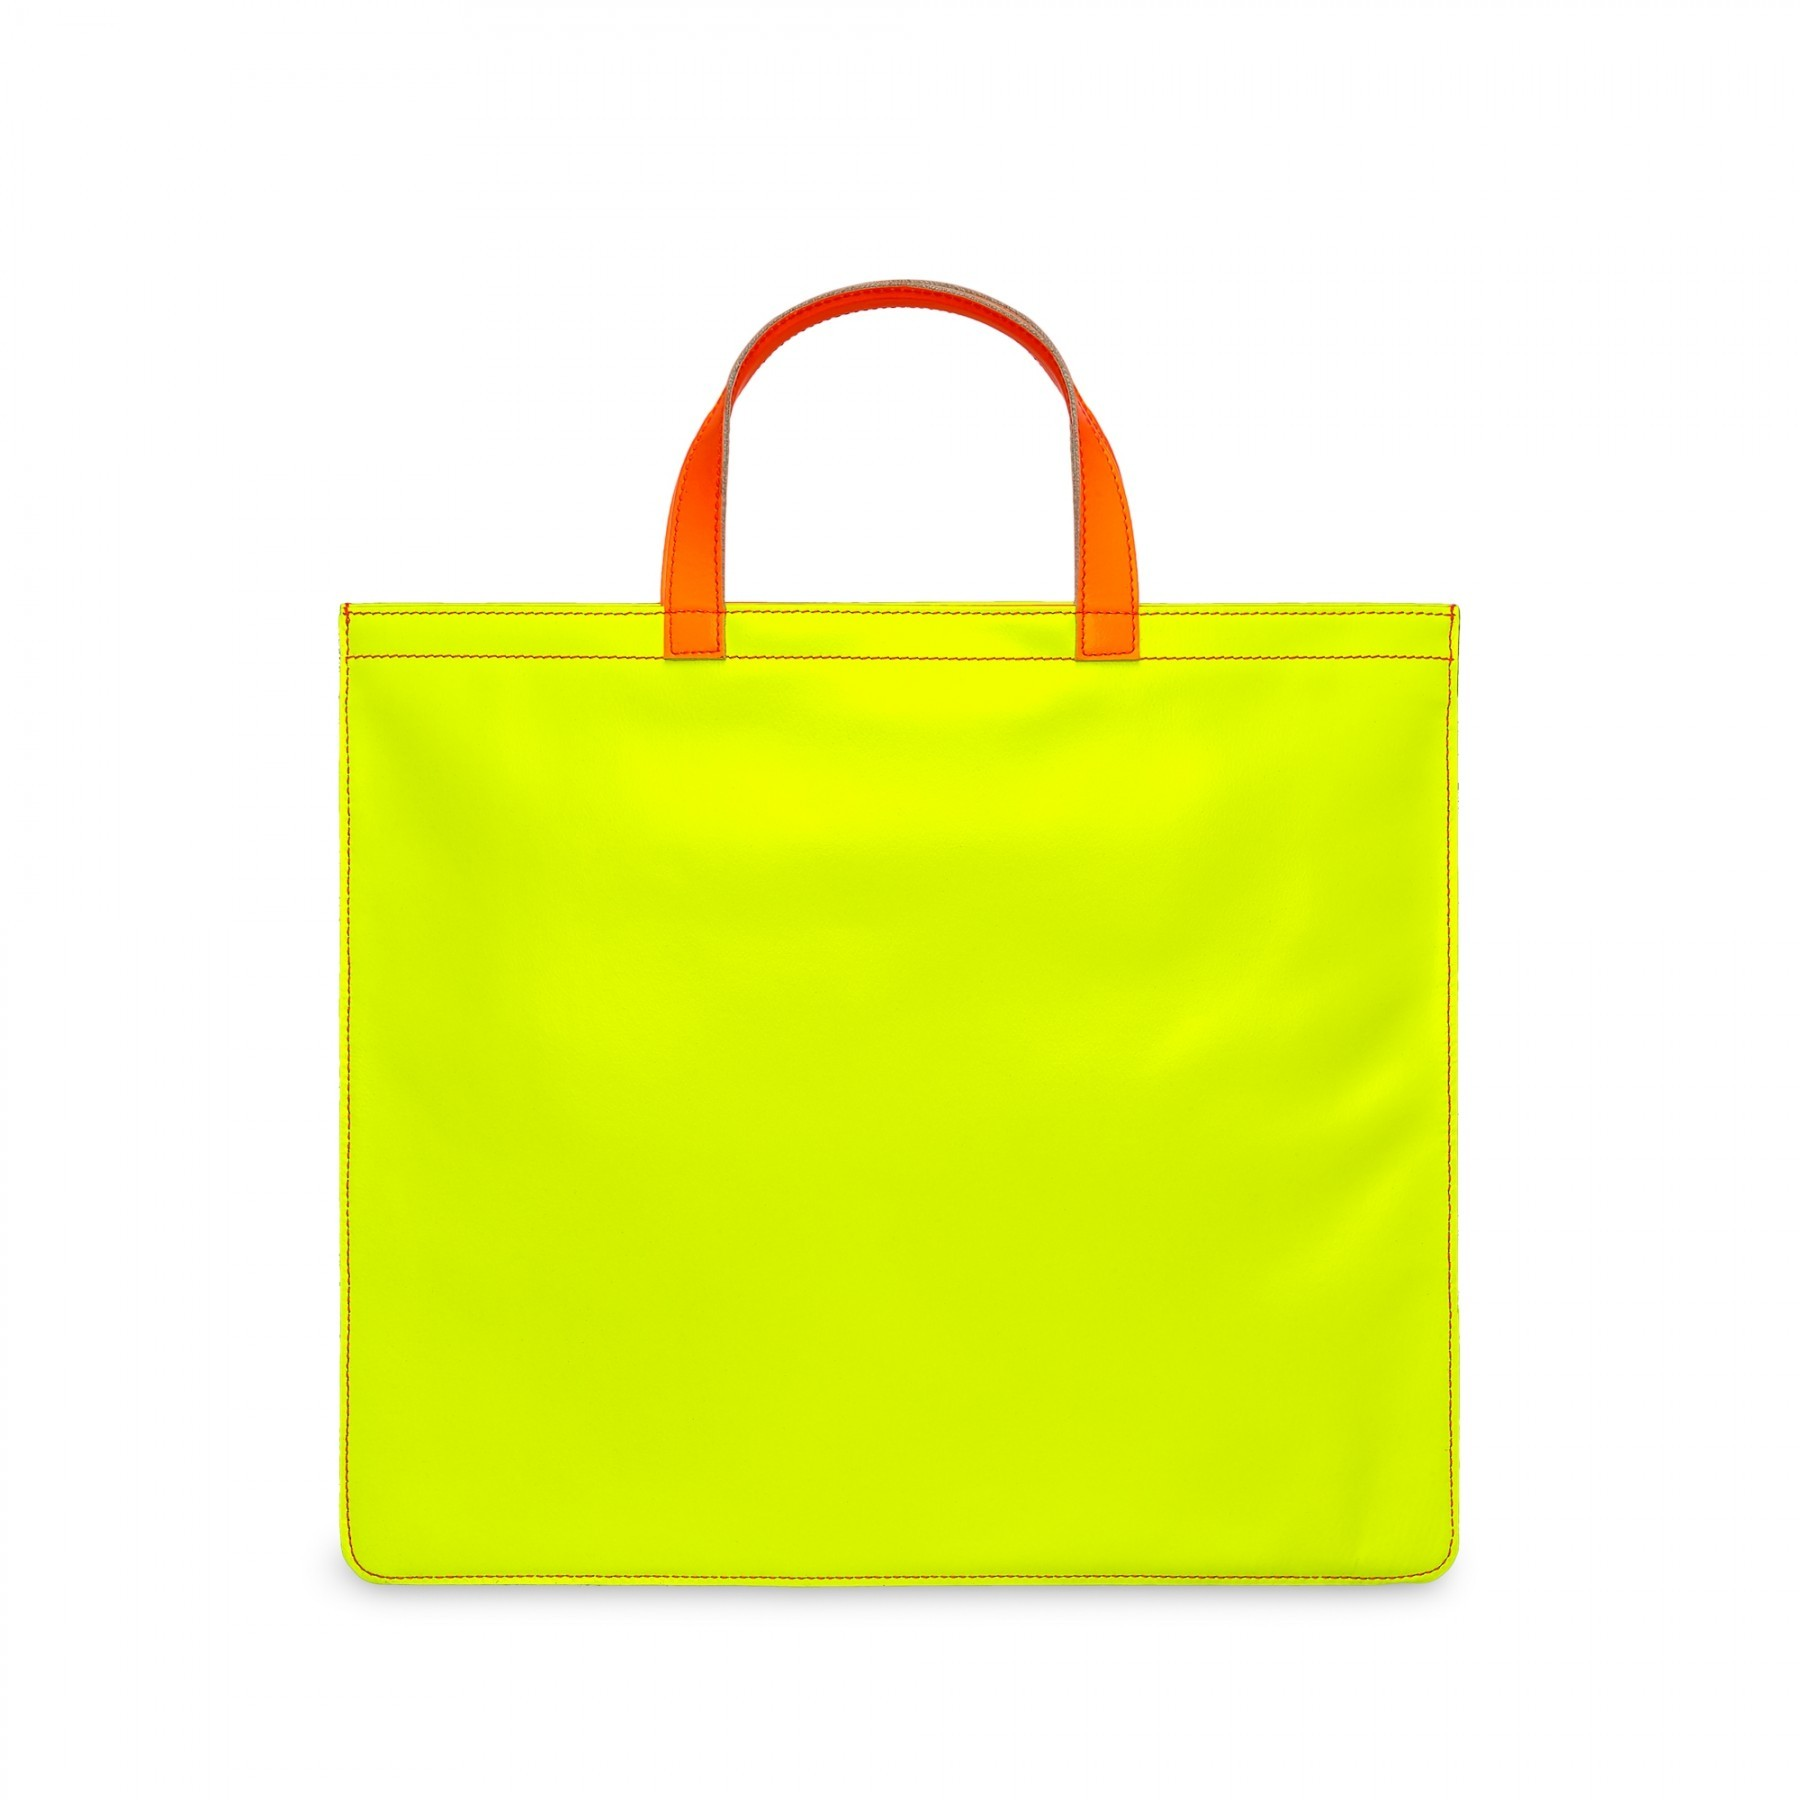 COMME DES GARÇONS WALLET - COMME DES GARÇONS WALLET SUPER FLUO LEATHER TOTE BAG PINK/YELLOW